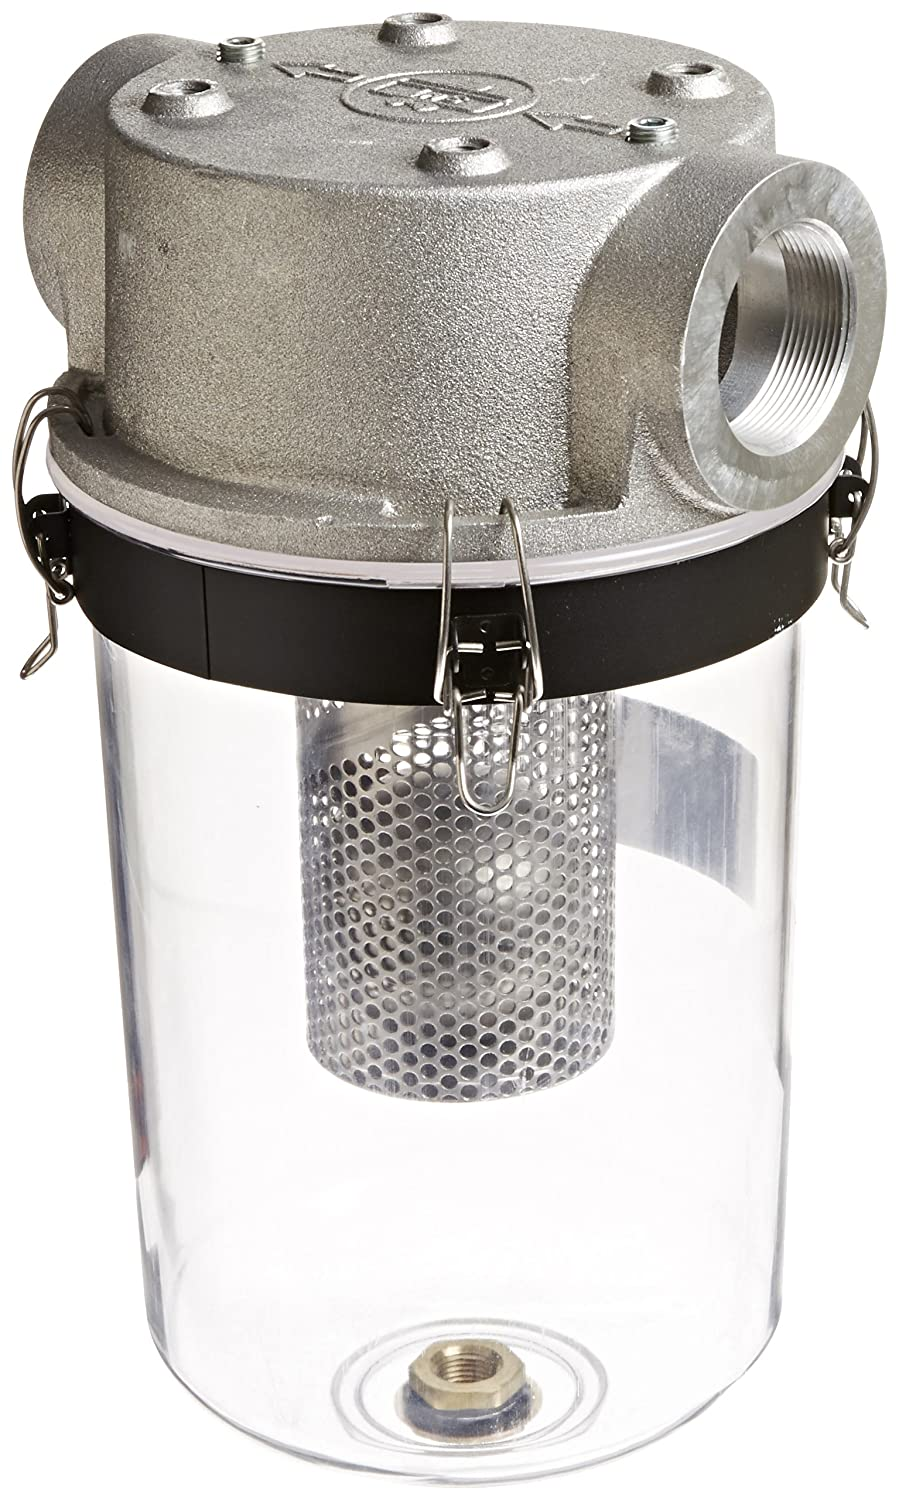 """Solberg STS-200C Inlet See Through Liquid Separator Vacuum Pump Air Filter, 2"""" FPT Inlet/Outlet, 16-1/4"""" Height, 9"""" Diameter, 175 SCFM, Made in the USA"""